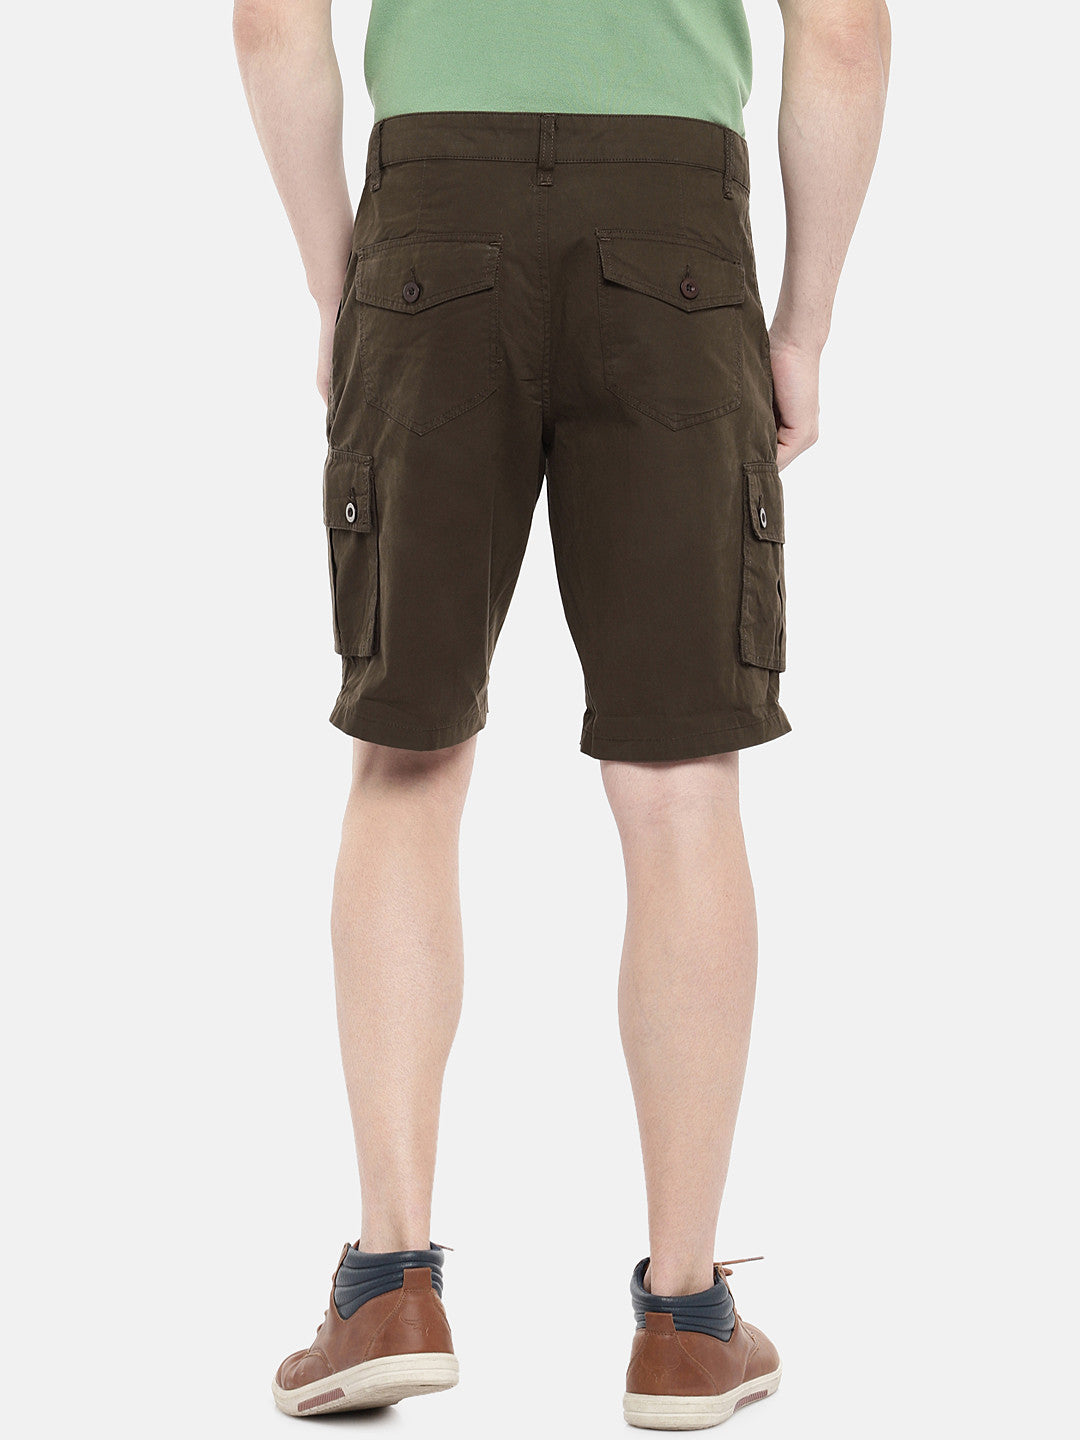 Olive Green Solid Regular Fit Regular Shorts-3